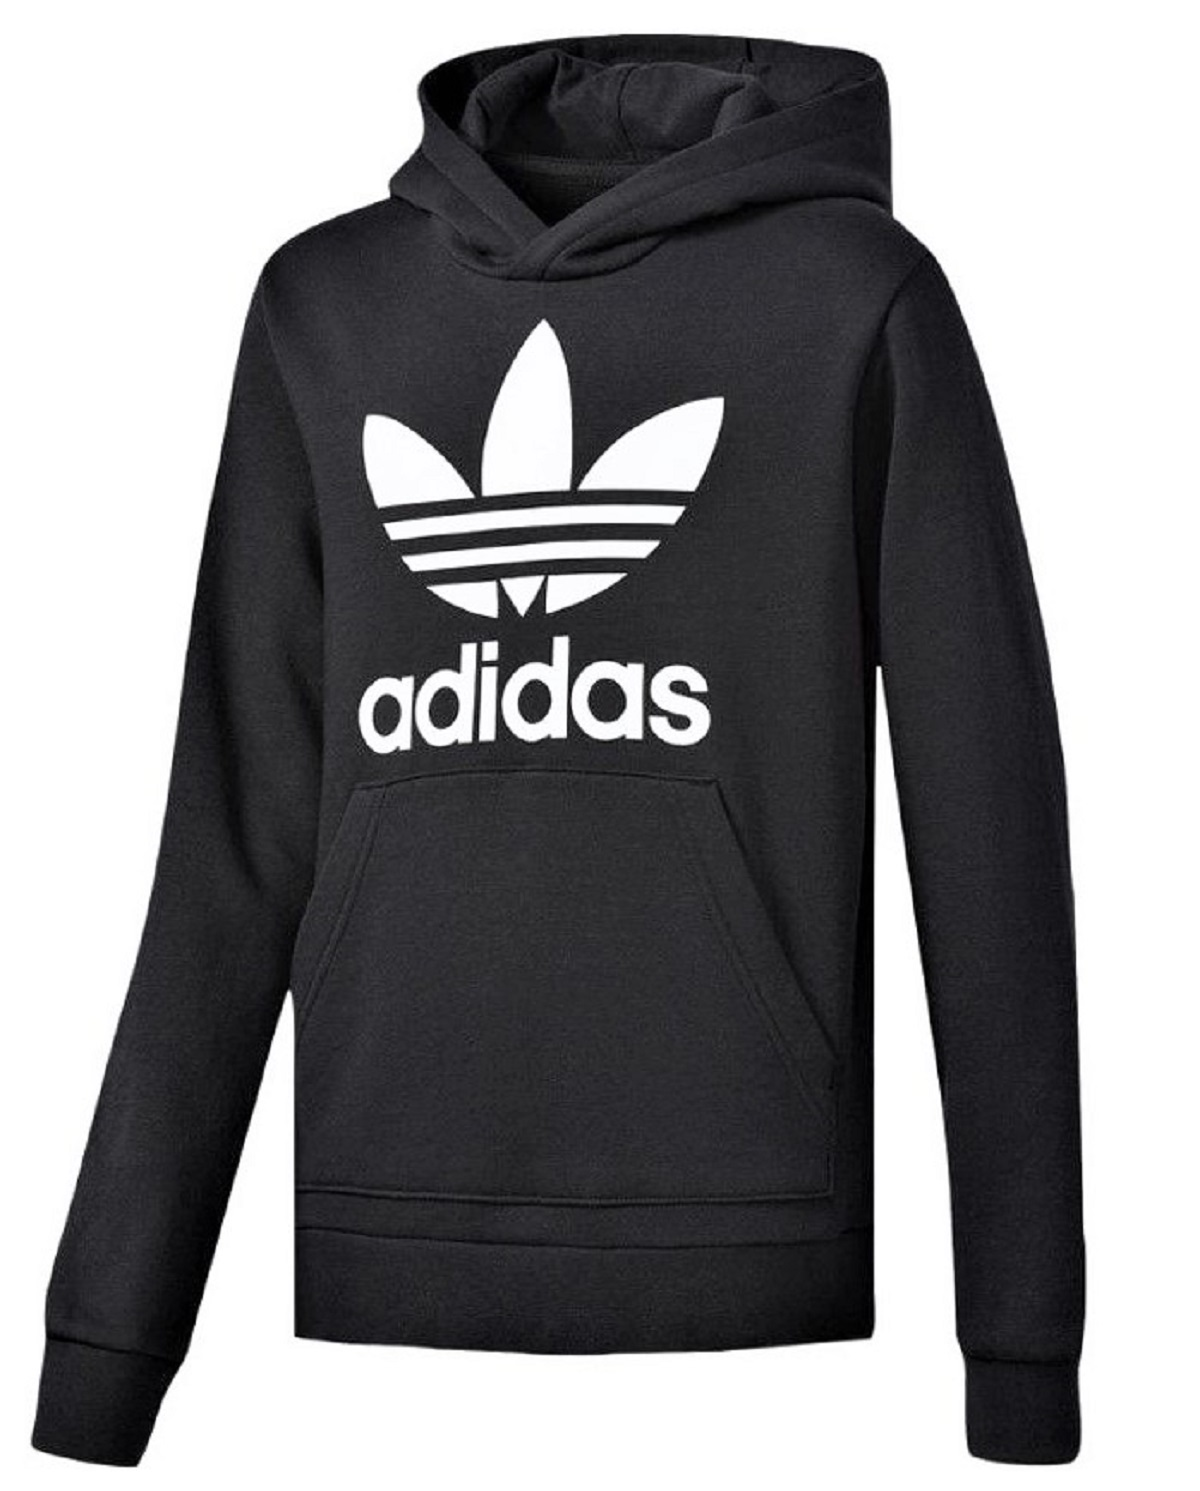 New Mens Adidas Original Mens Trefoil Fleece Hoodie Hooded Sweatshirt Pullover Jumper Black